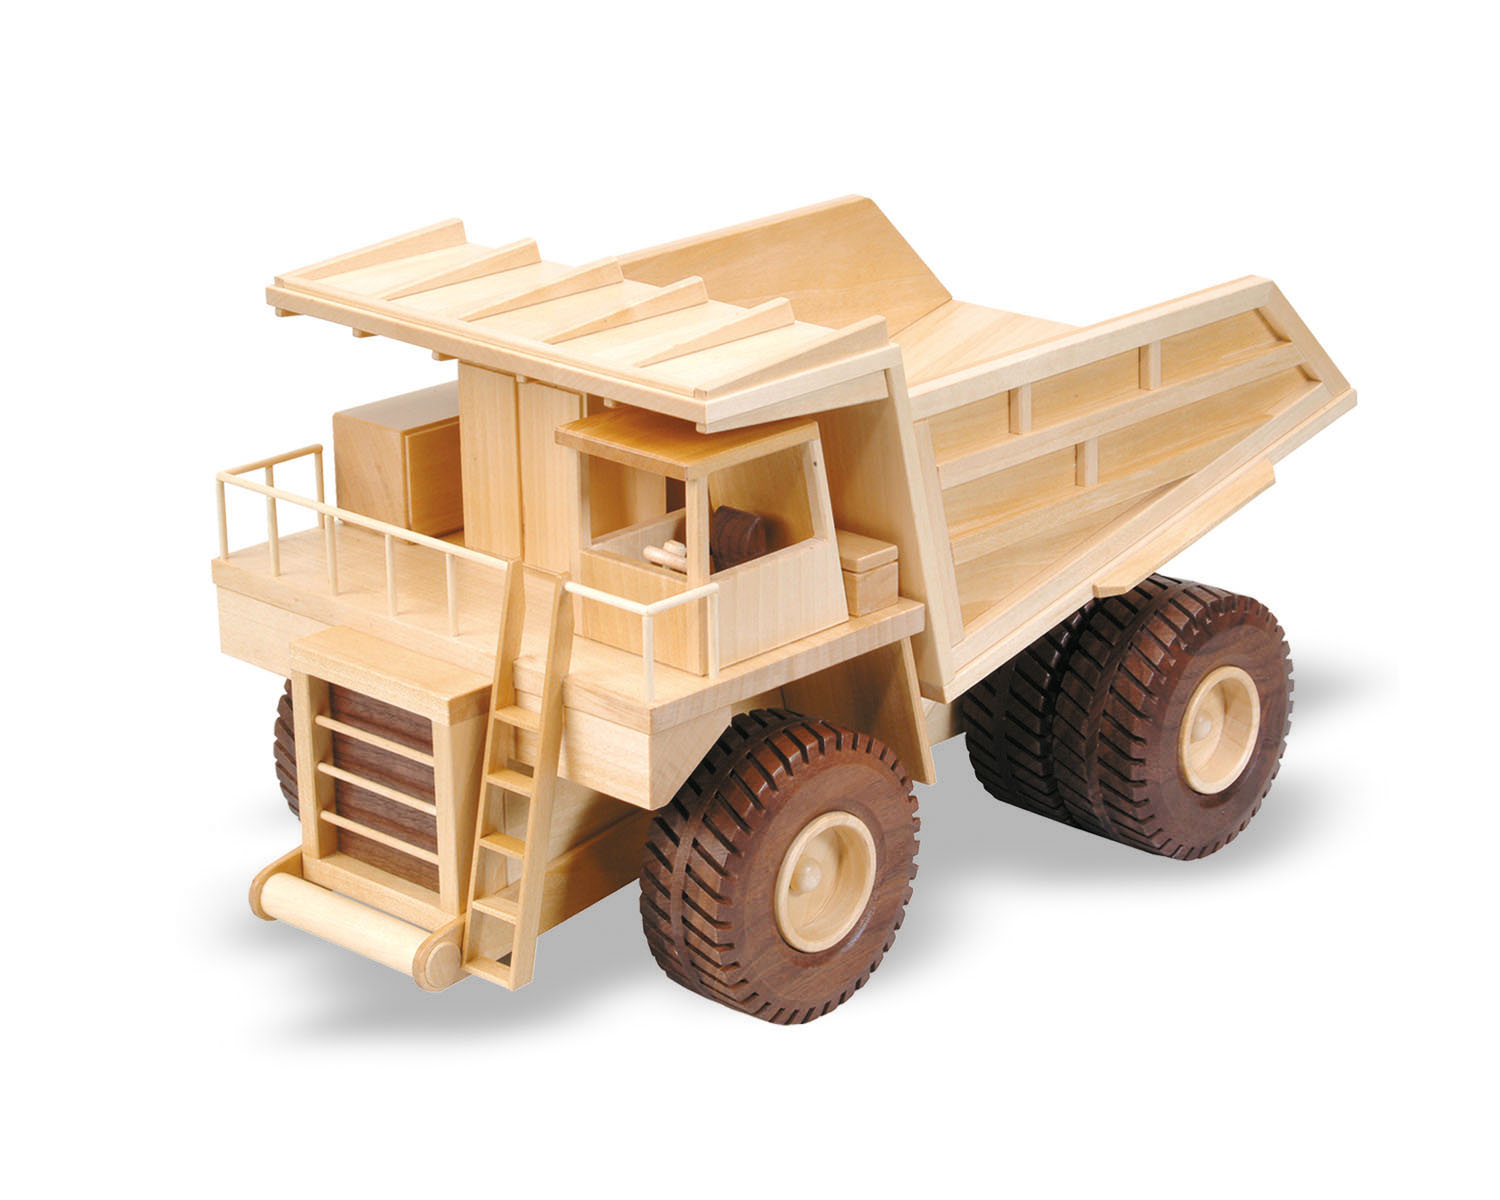 the mining truck 18inch (woodworking plan)